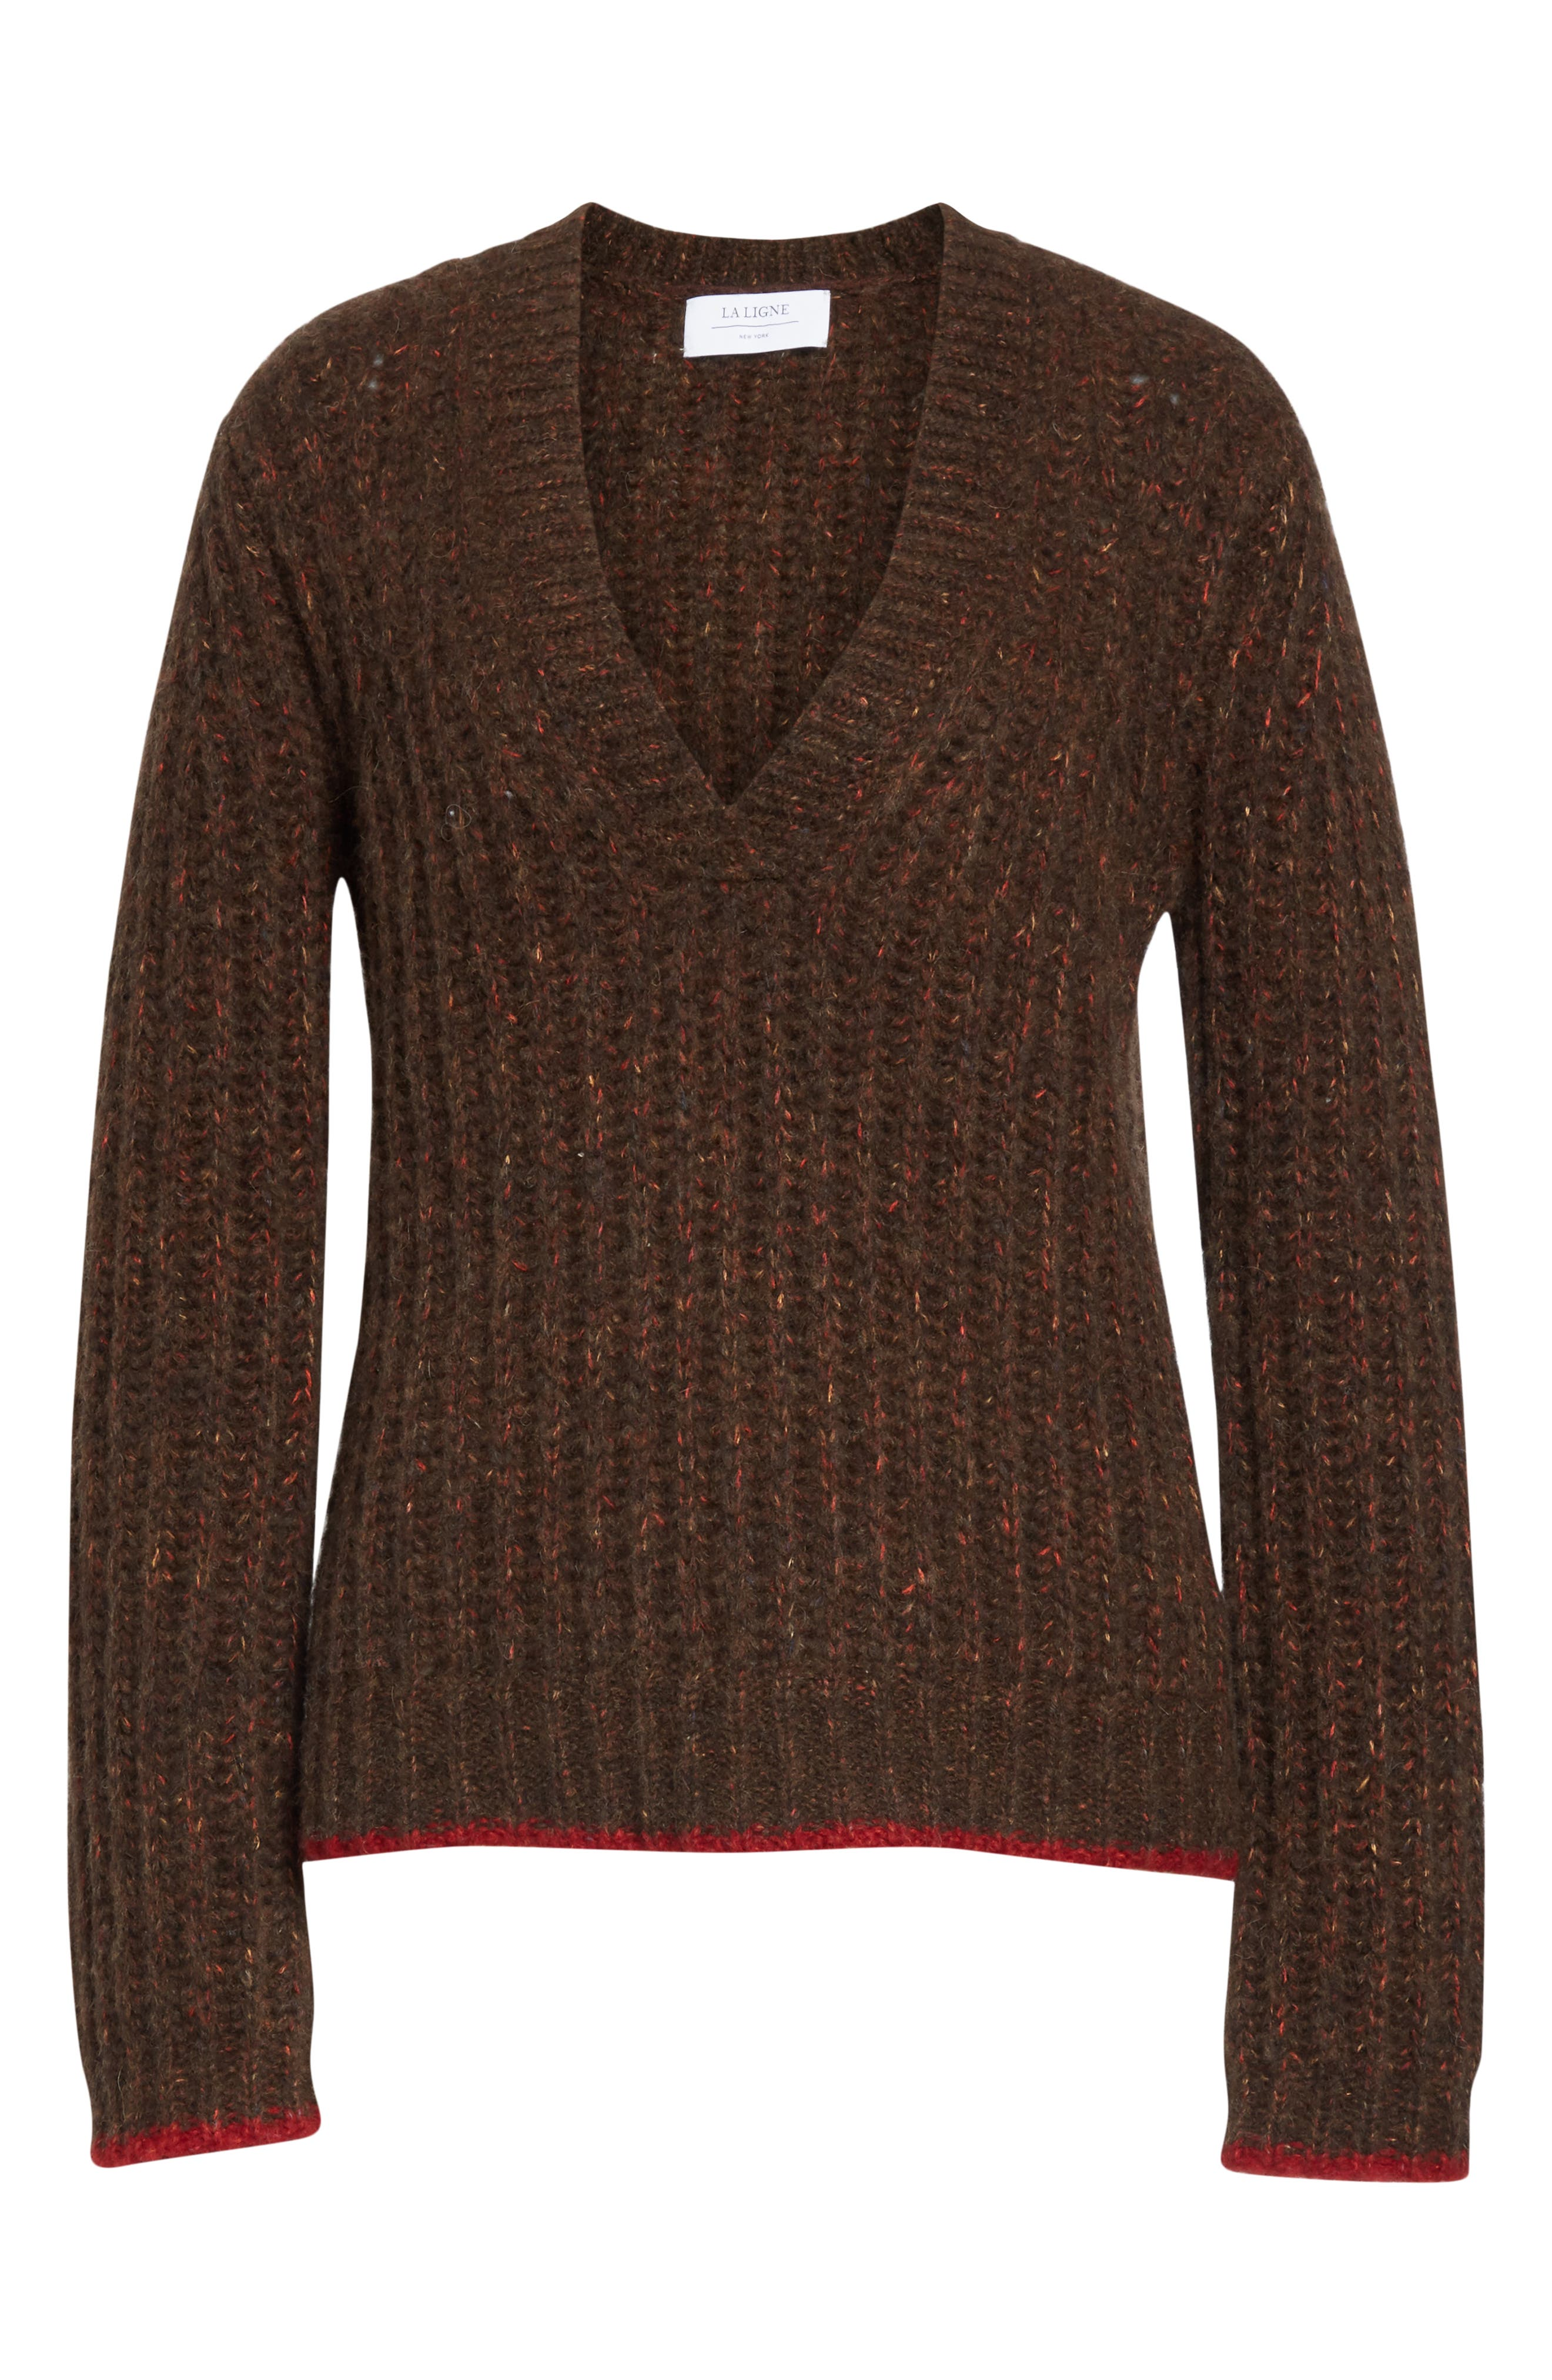 Oversize V-Neck Sweater,                             Alternate thumbnail 6, color,                             BROWN / RED